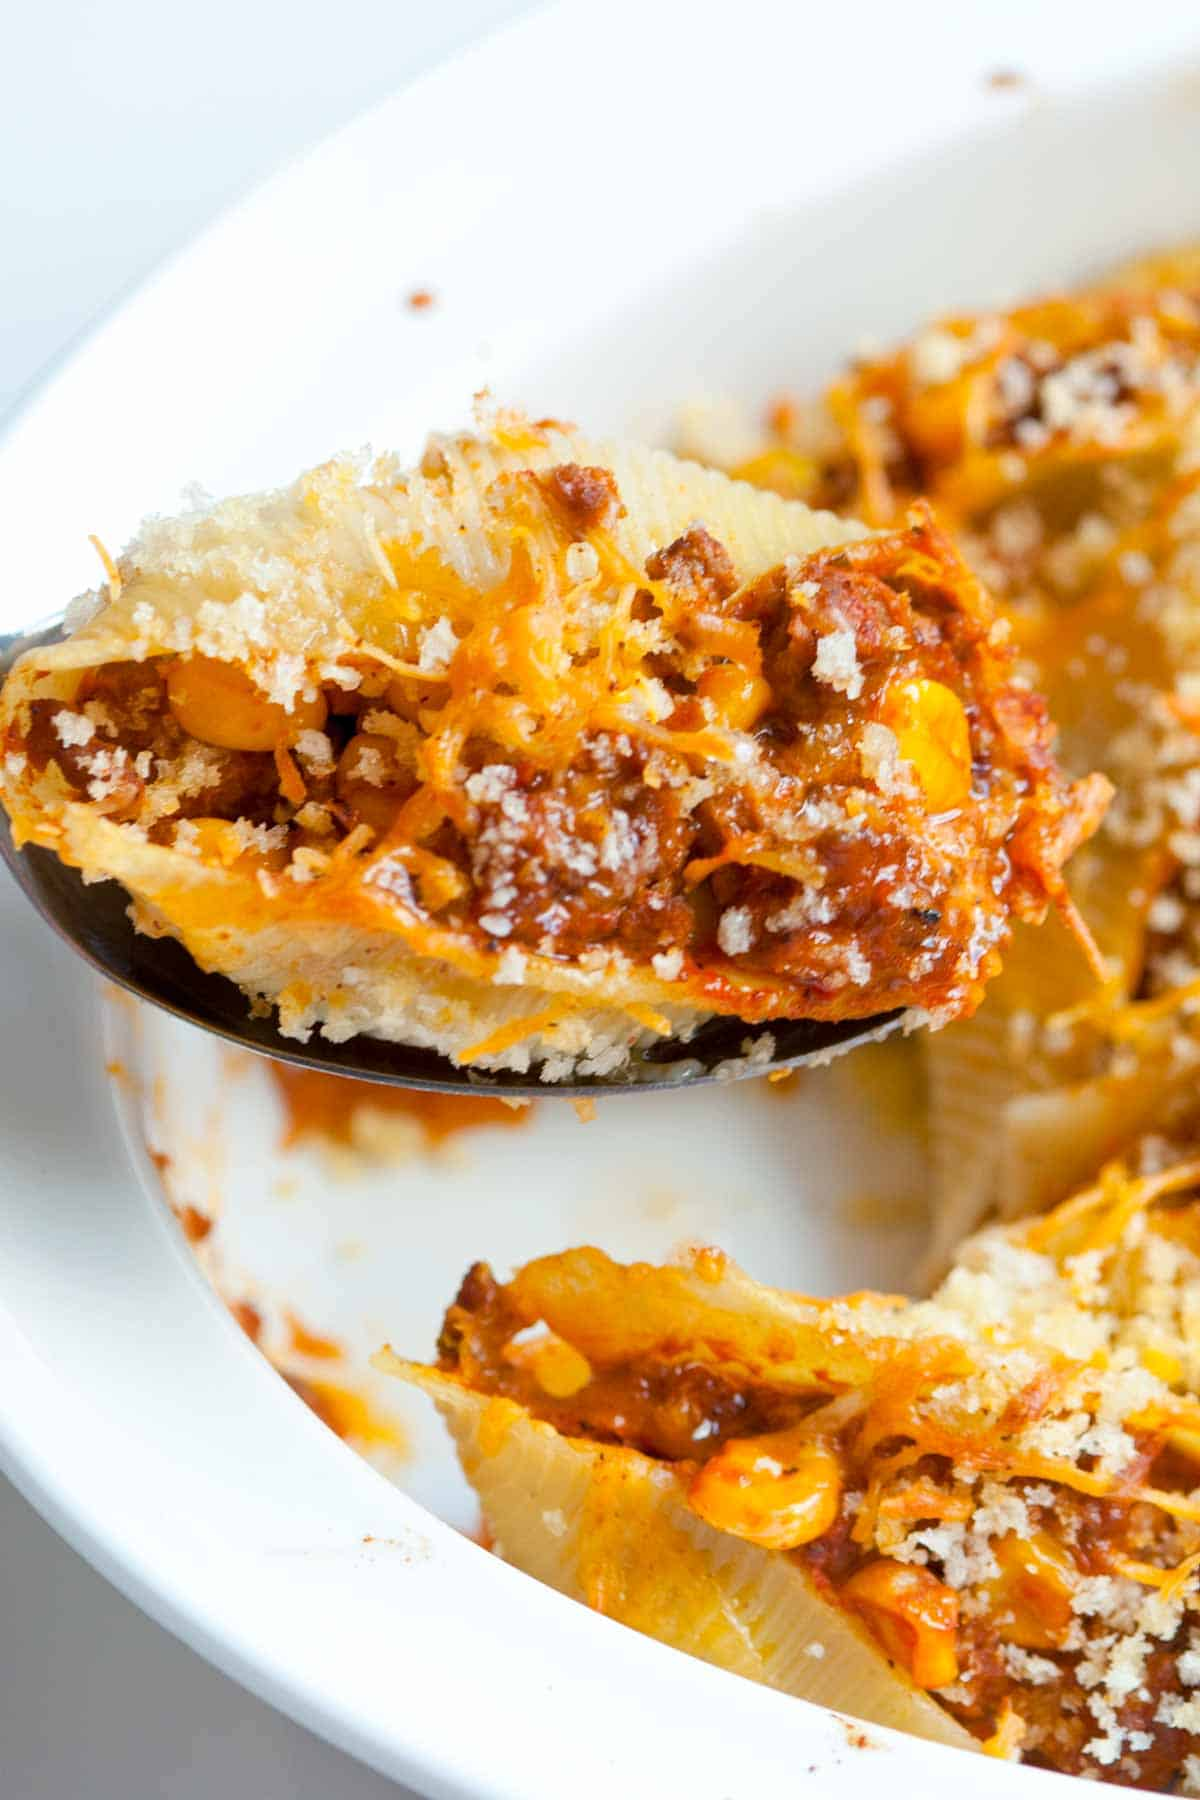 Recipes for stuffed meat shells